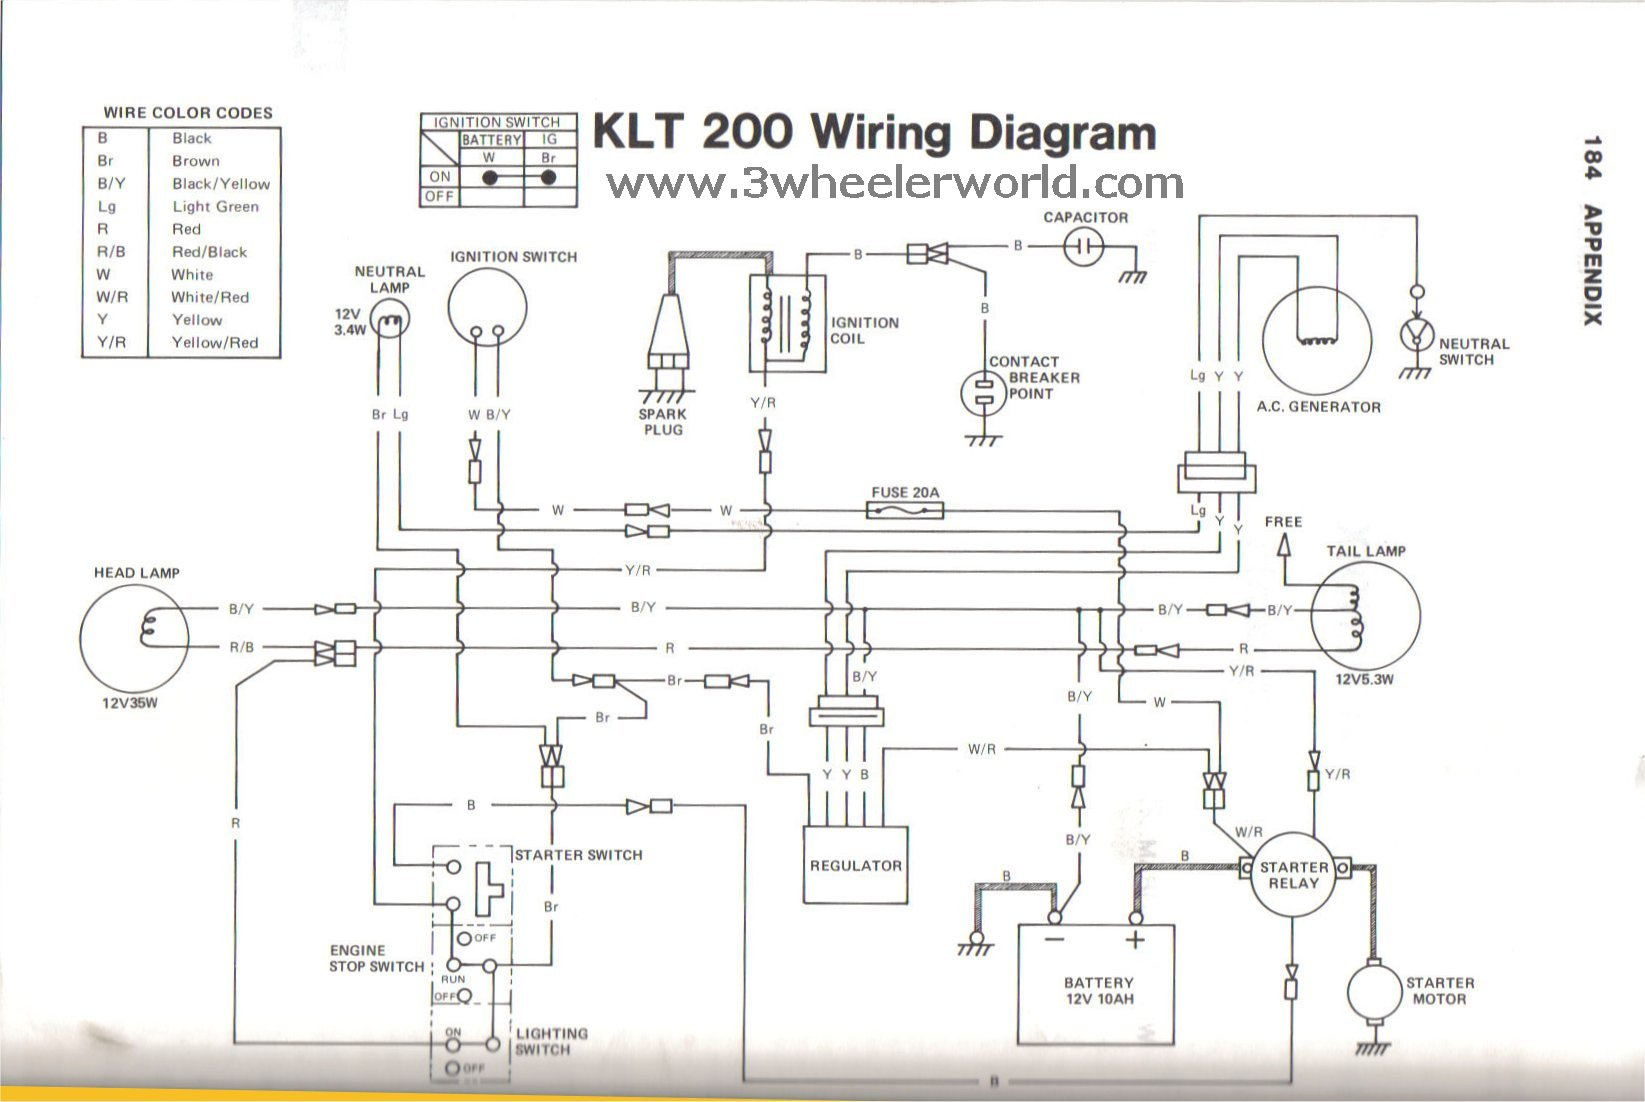 KLT200WiringDiagram1 3 wheeler world tech help kawasaki wiring diagrams  at suagrazia.org